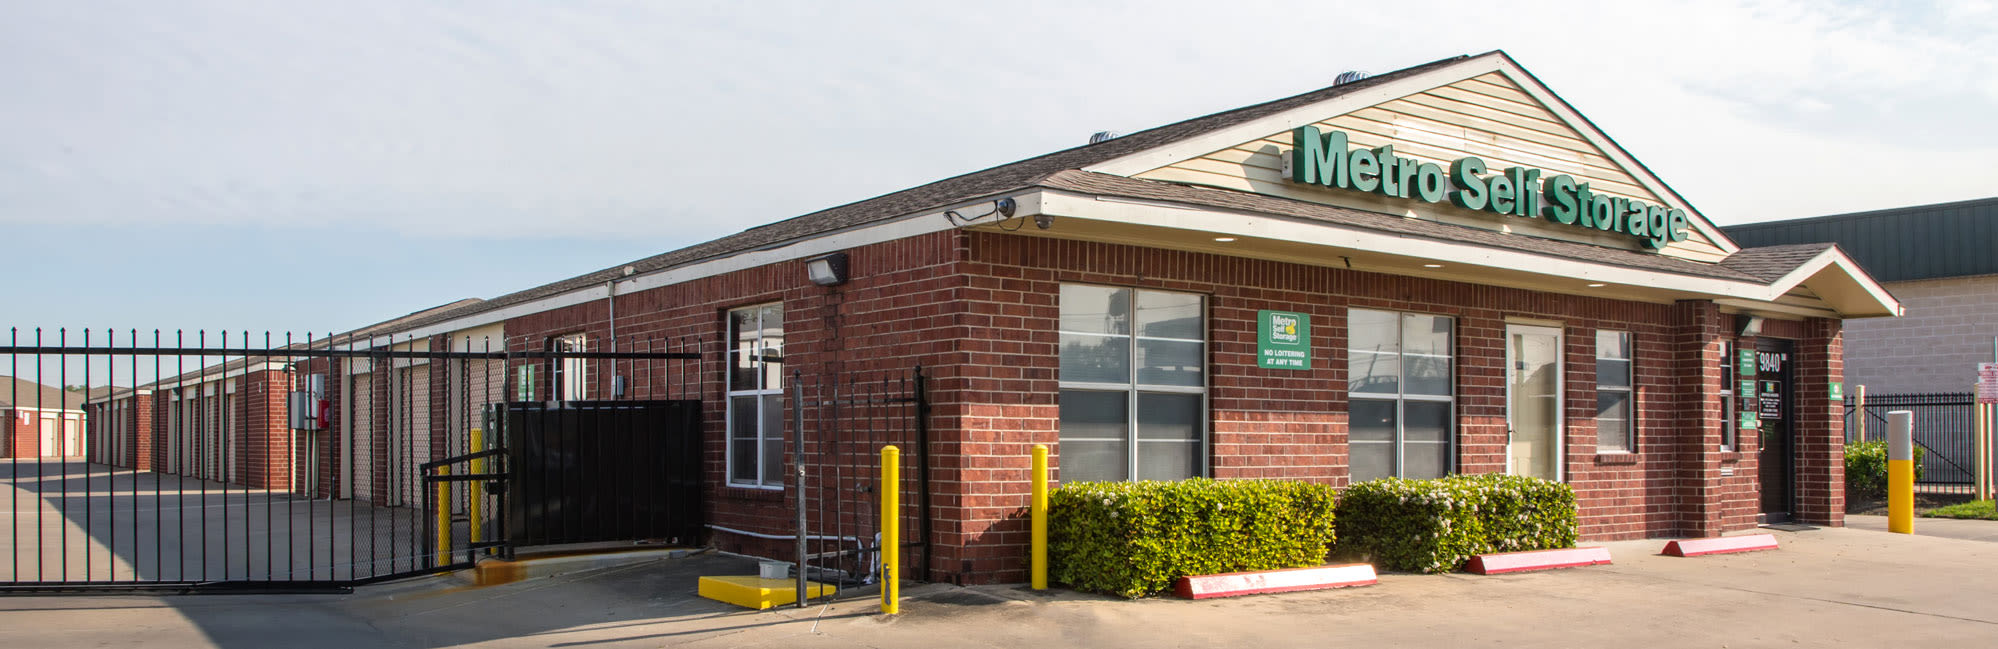 Metro Self Storage in Houston, TX